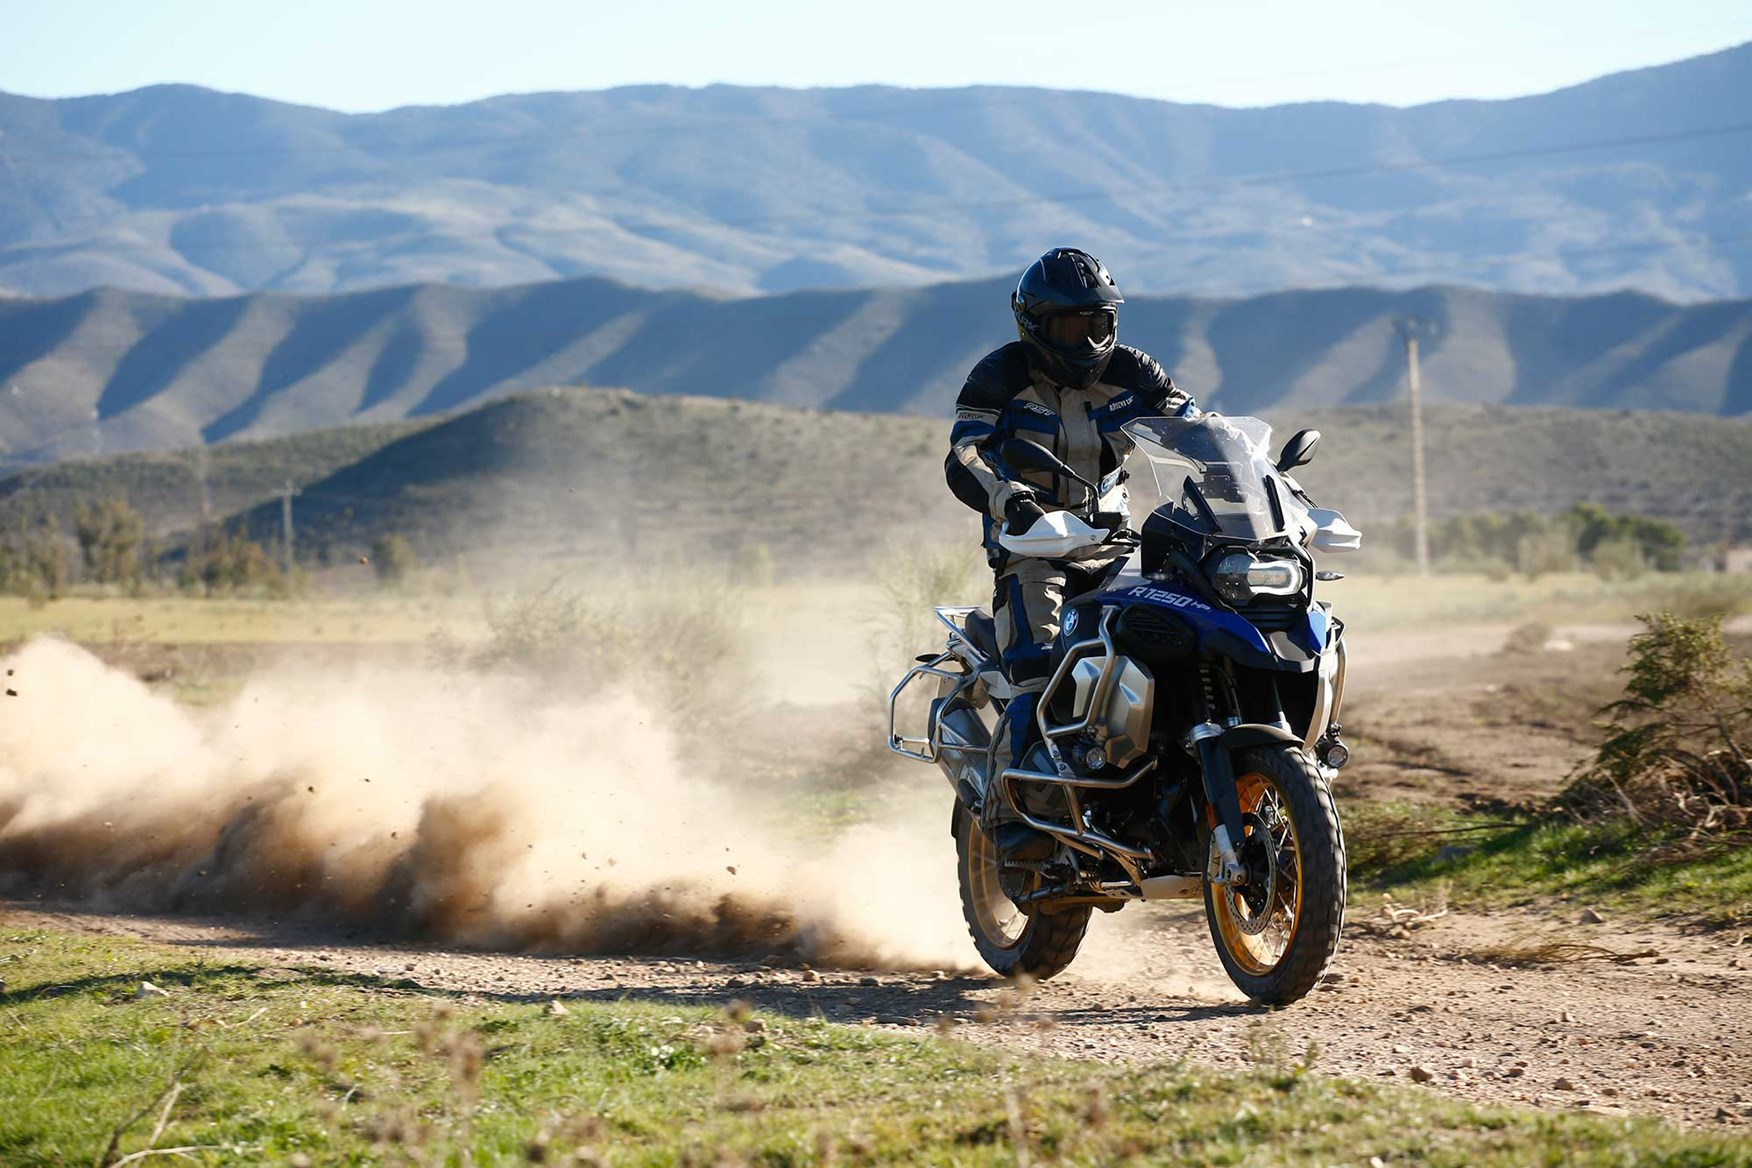 BMW R1250GS ADVENTURE (2019-on) Review